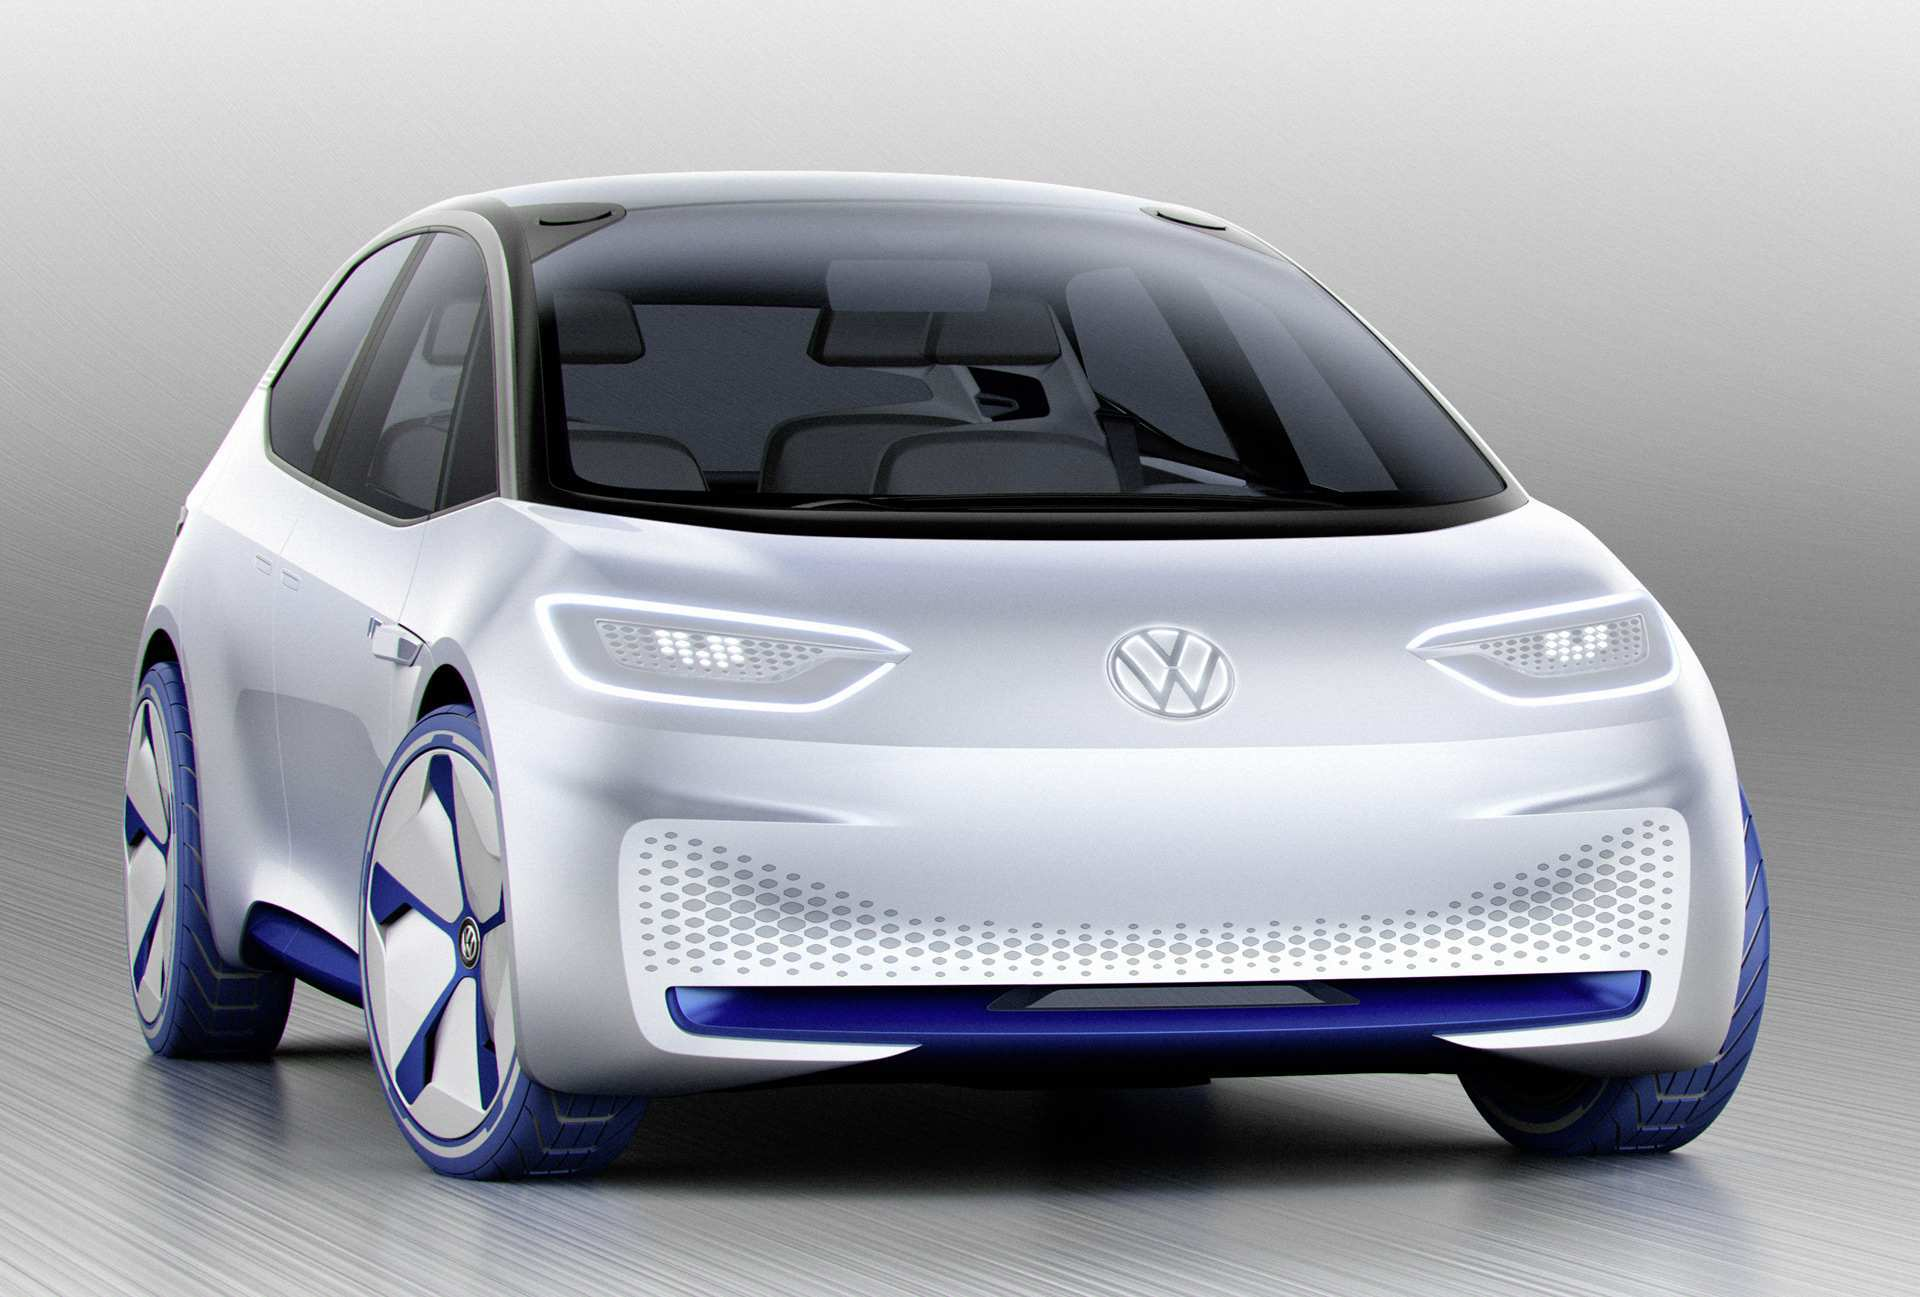 92 Gallery of Vw 2020 Car Style for Vw 2020 Car